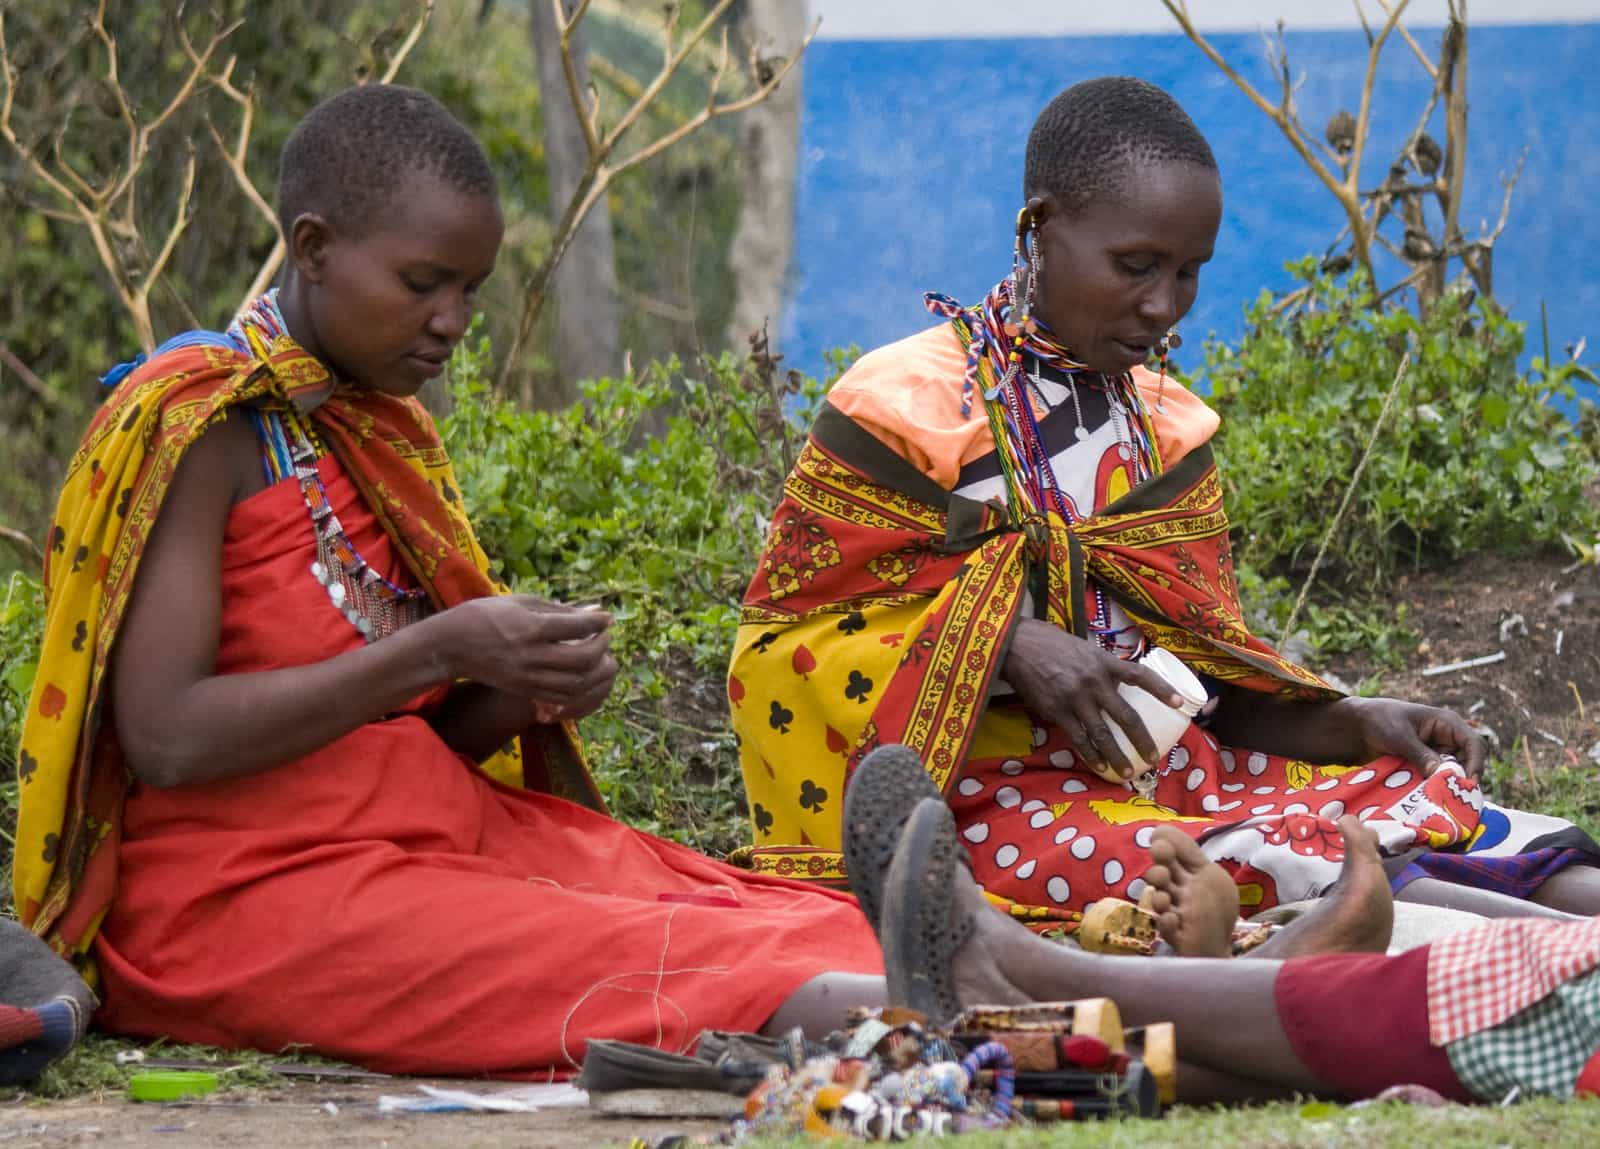 Why Are Women Choosing Each Other as the Primary Partner in Tanzania?